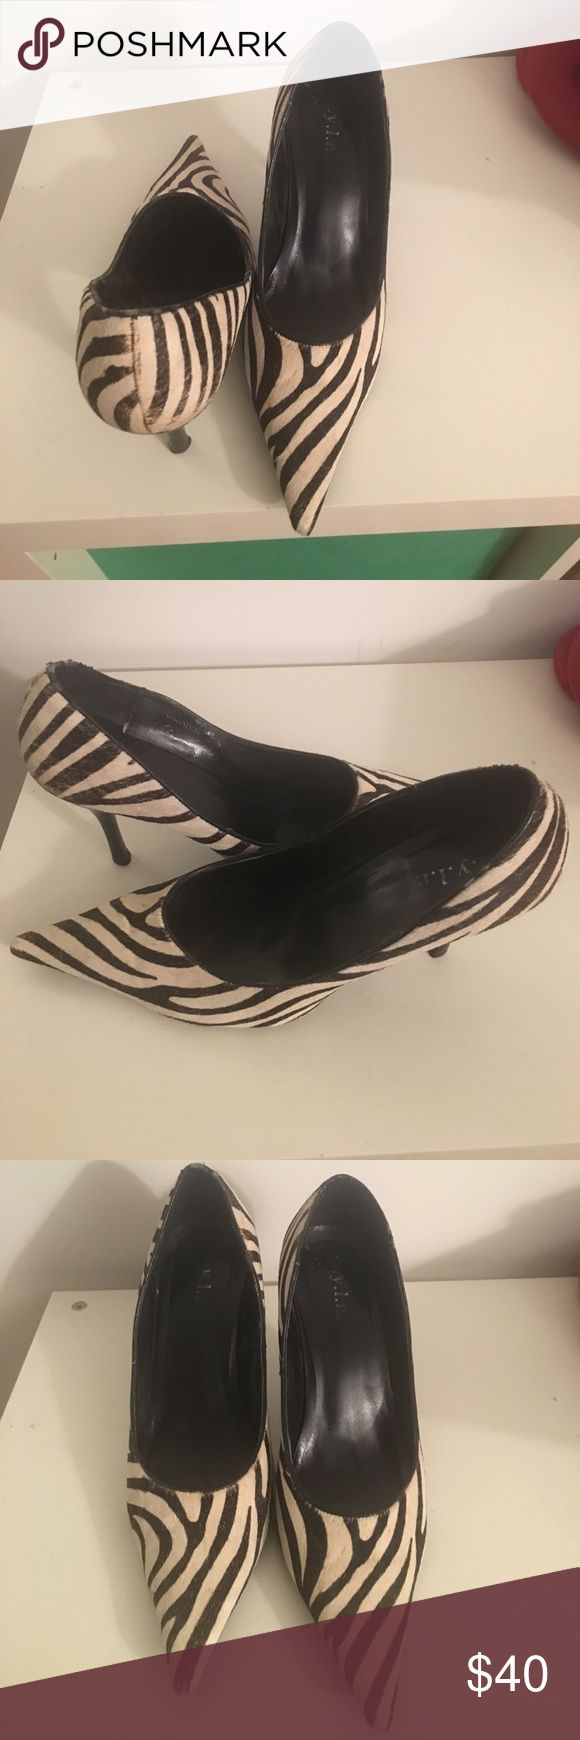 Zebra Shoes Zebra hide high heel shoes NYLA Shoes Heels